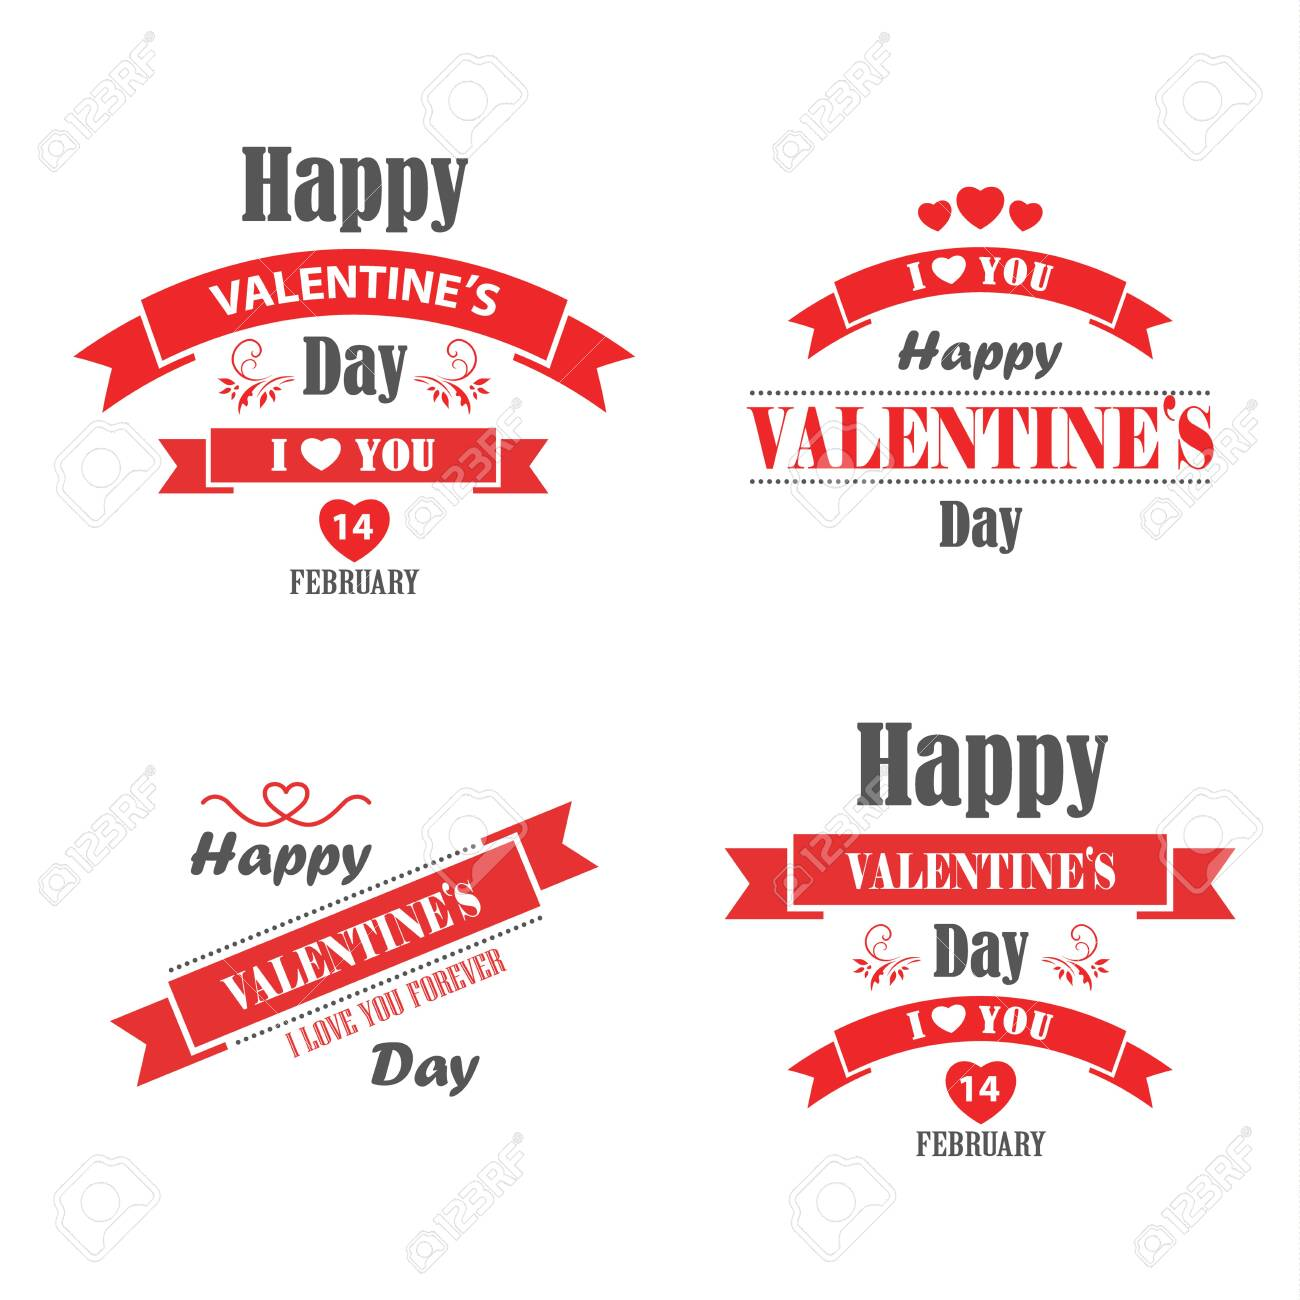 Valentine retro vintage poster with red ribbons template vector eps 10 - 138584820